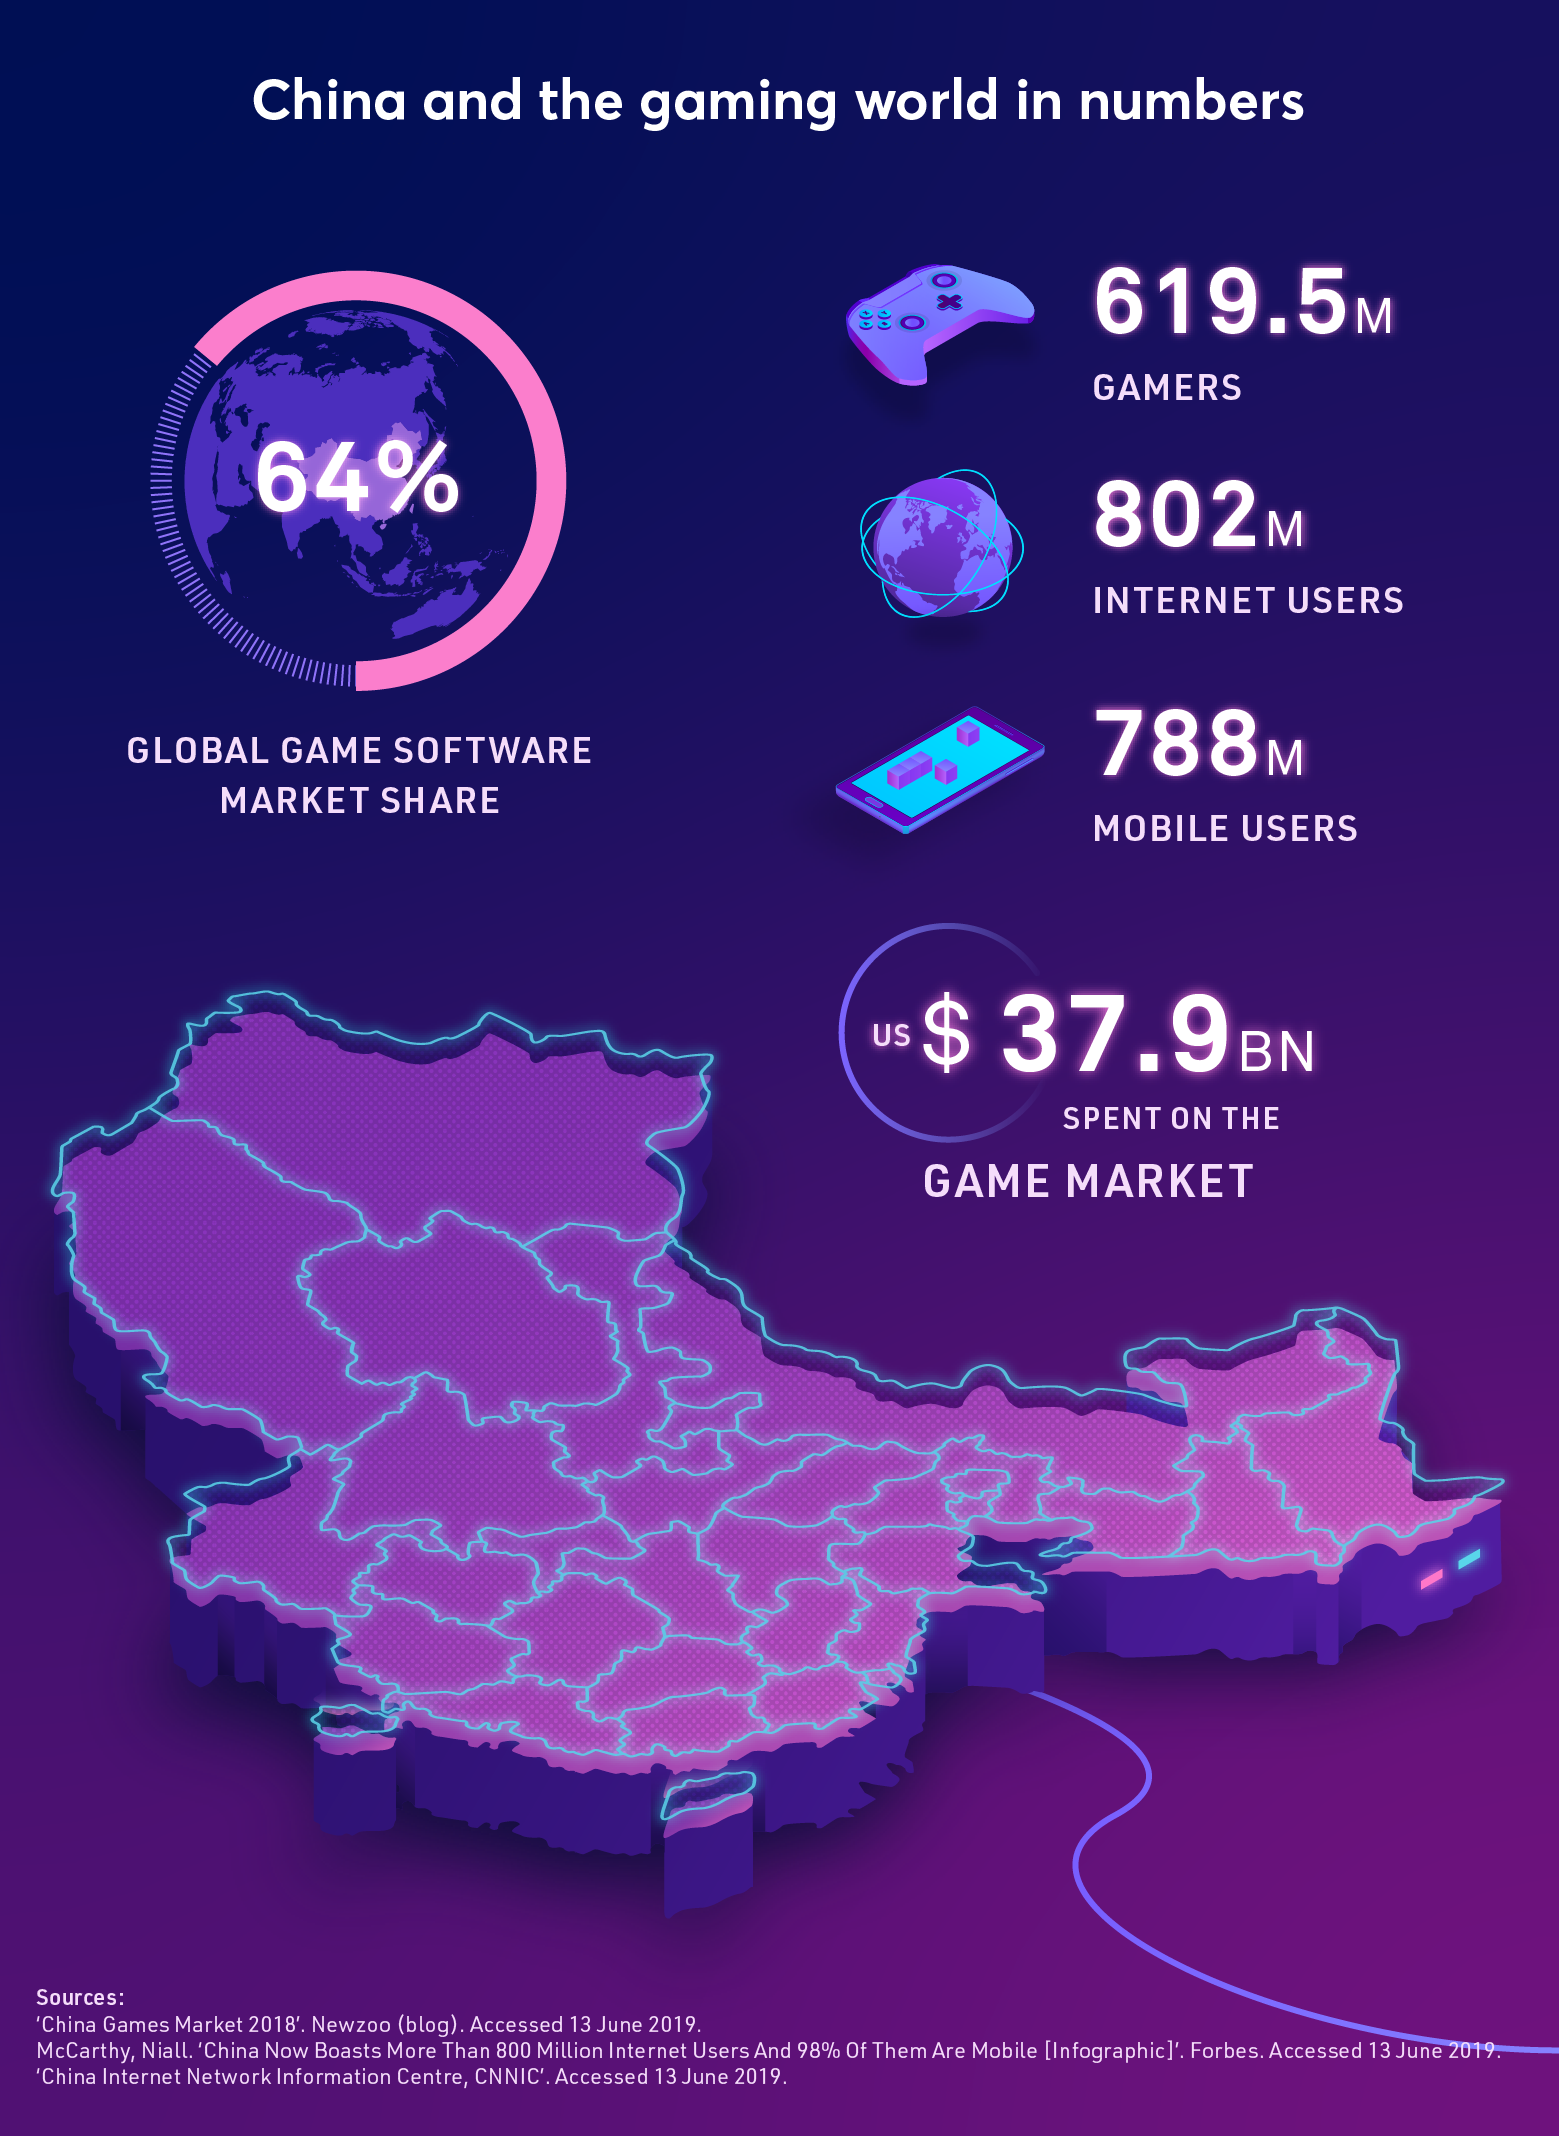 The role of China in gaming industry regulations